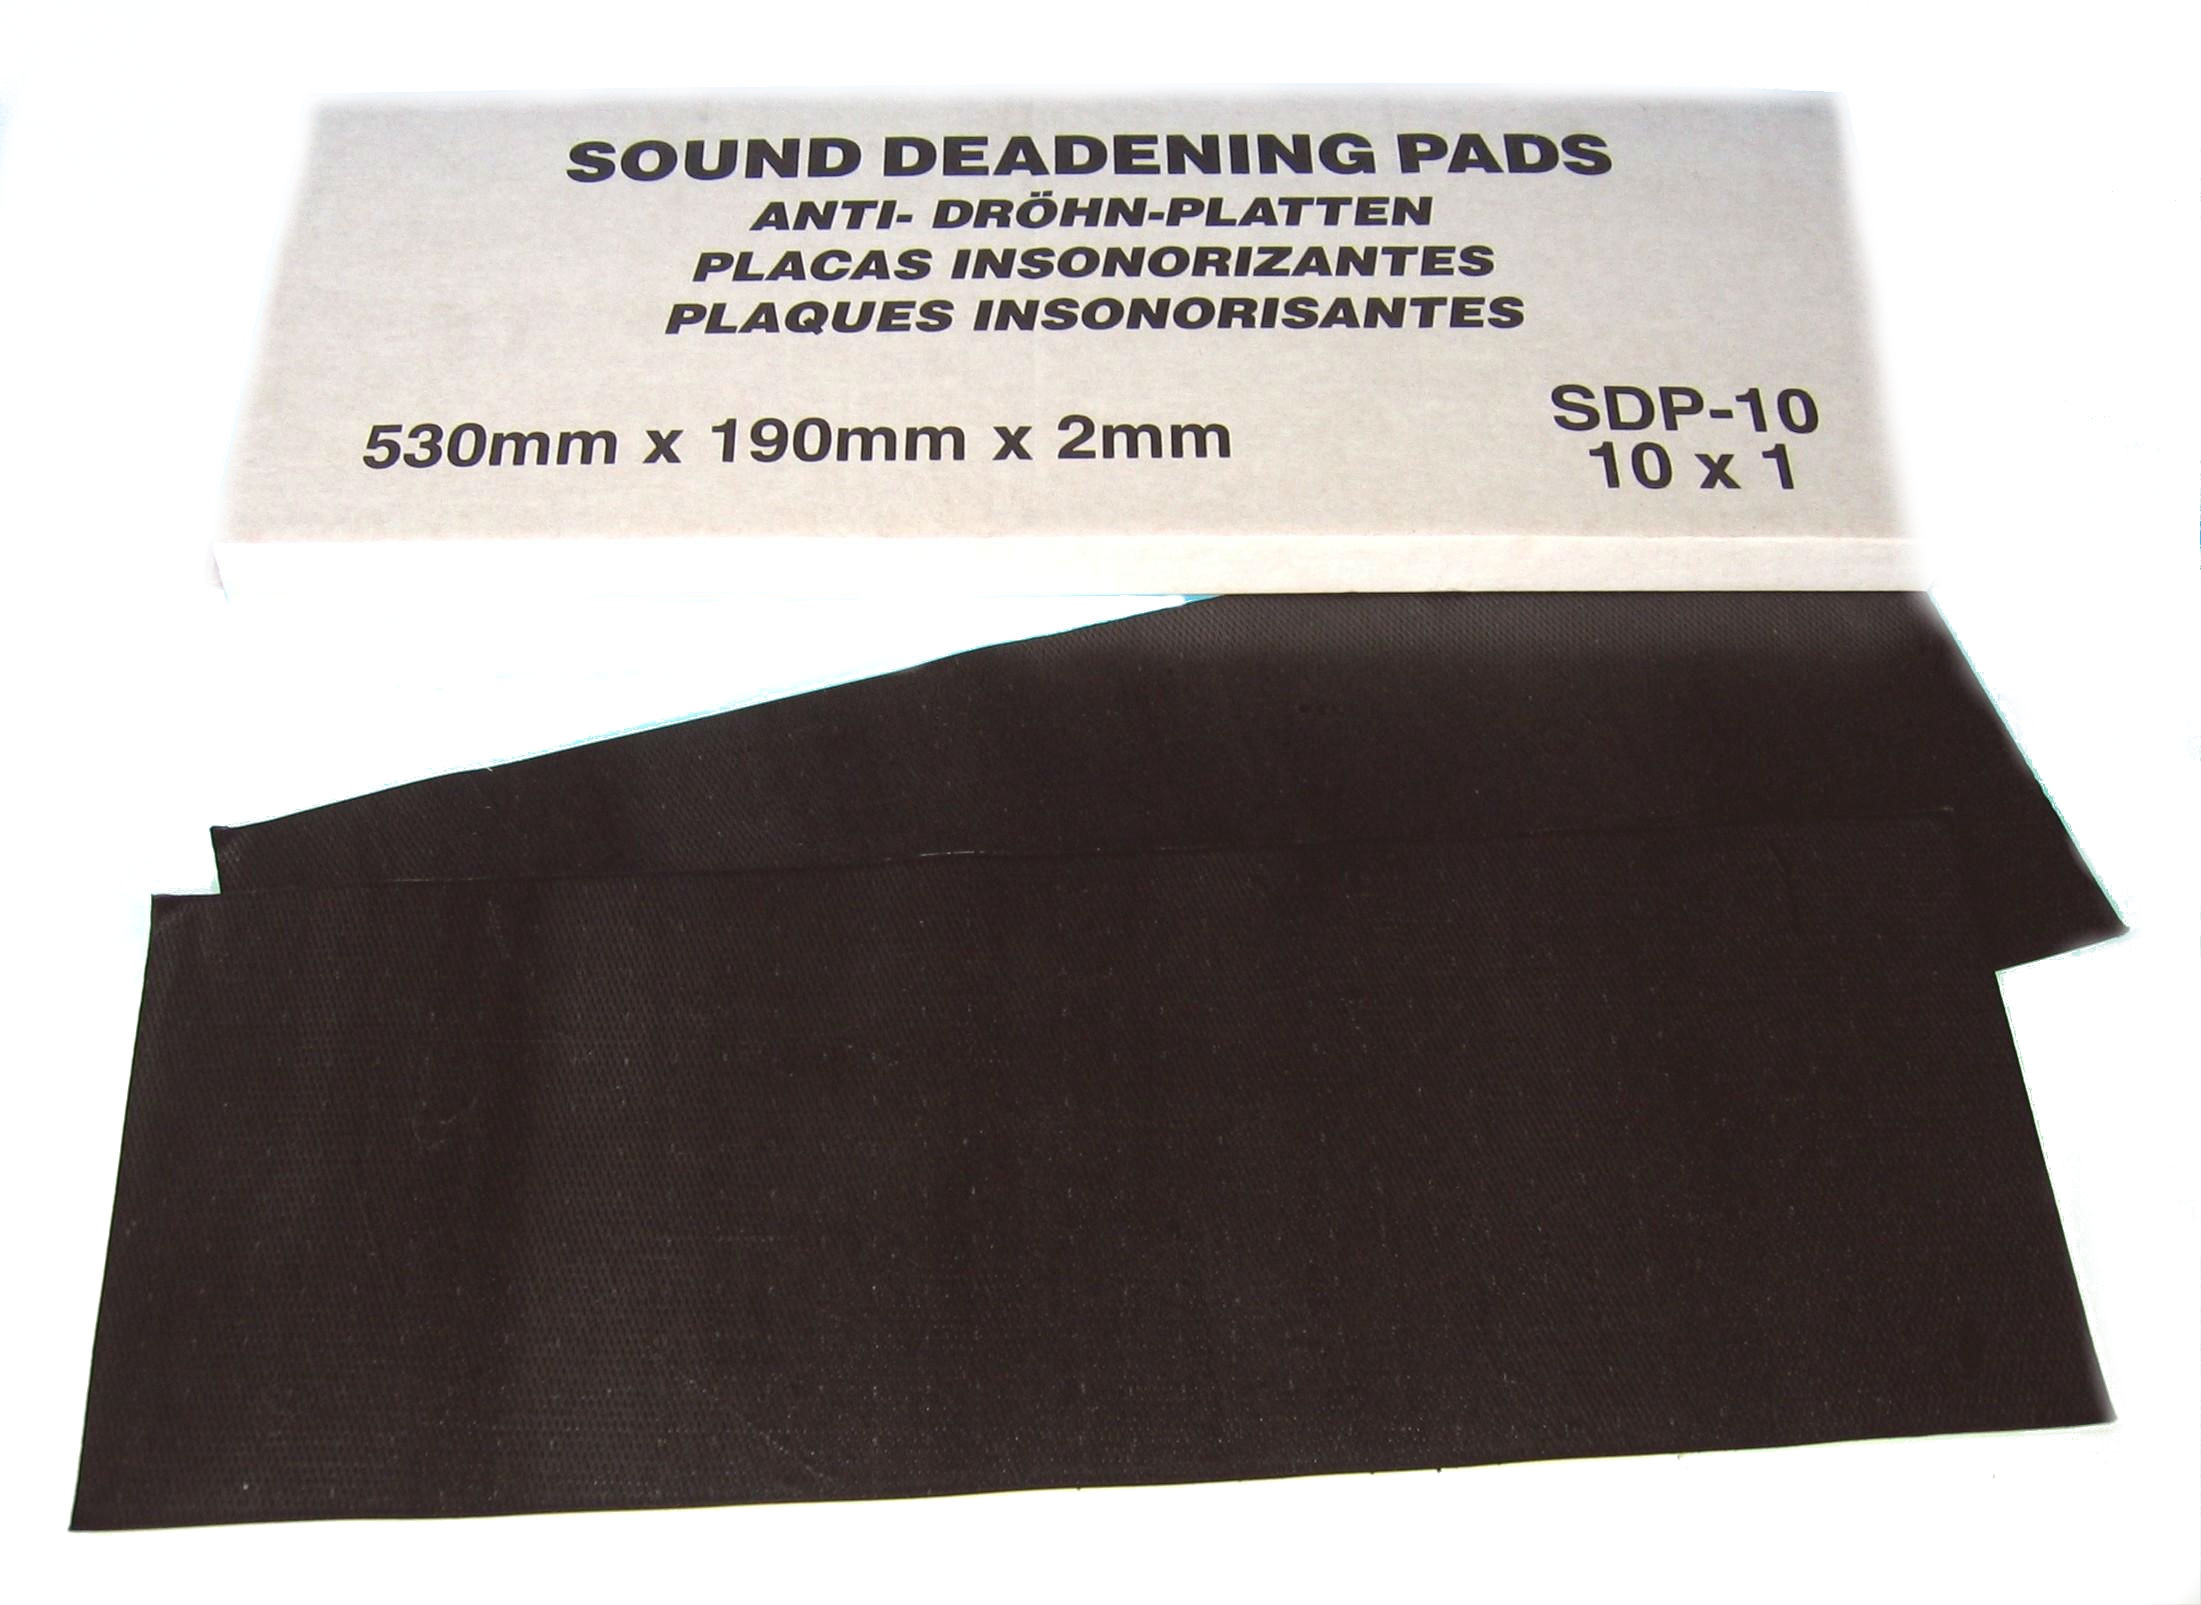 Sound Deadening Pads 530 X 190 mm PK10